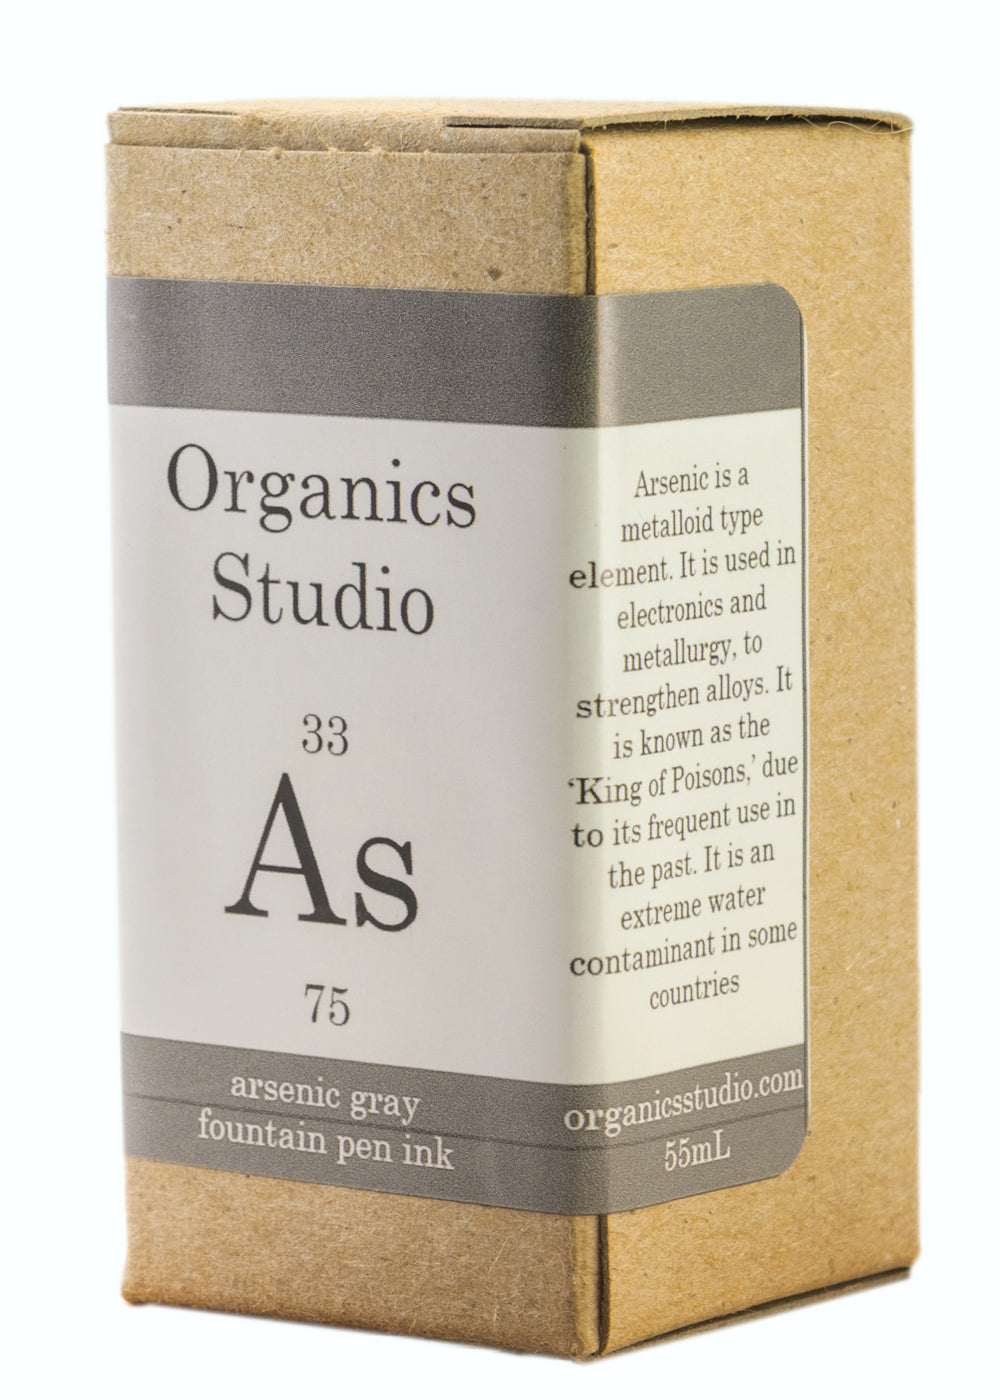 Organics Studio Elements Arsenic Grey